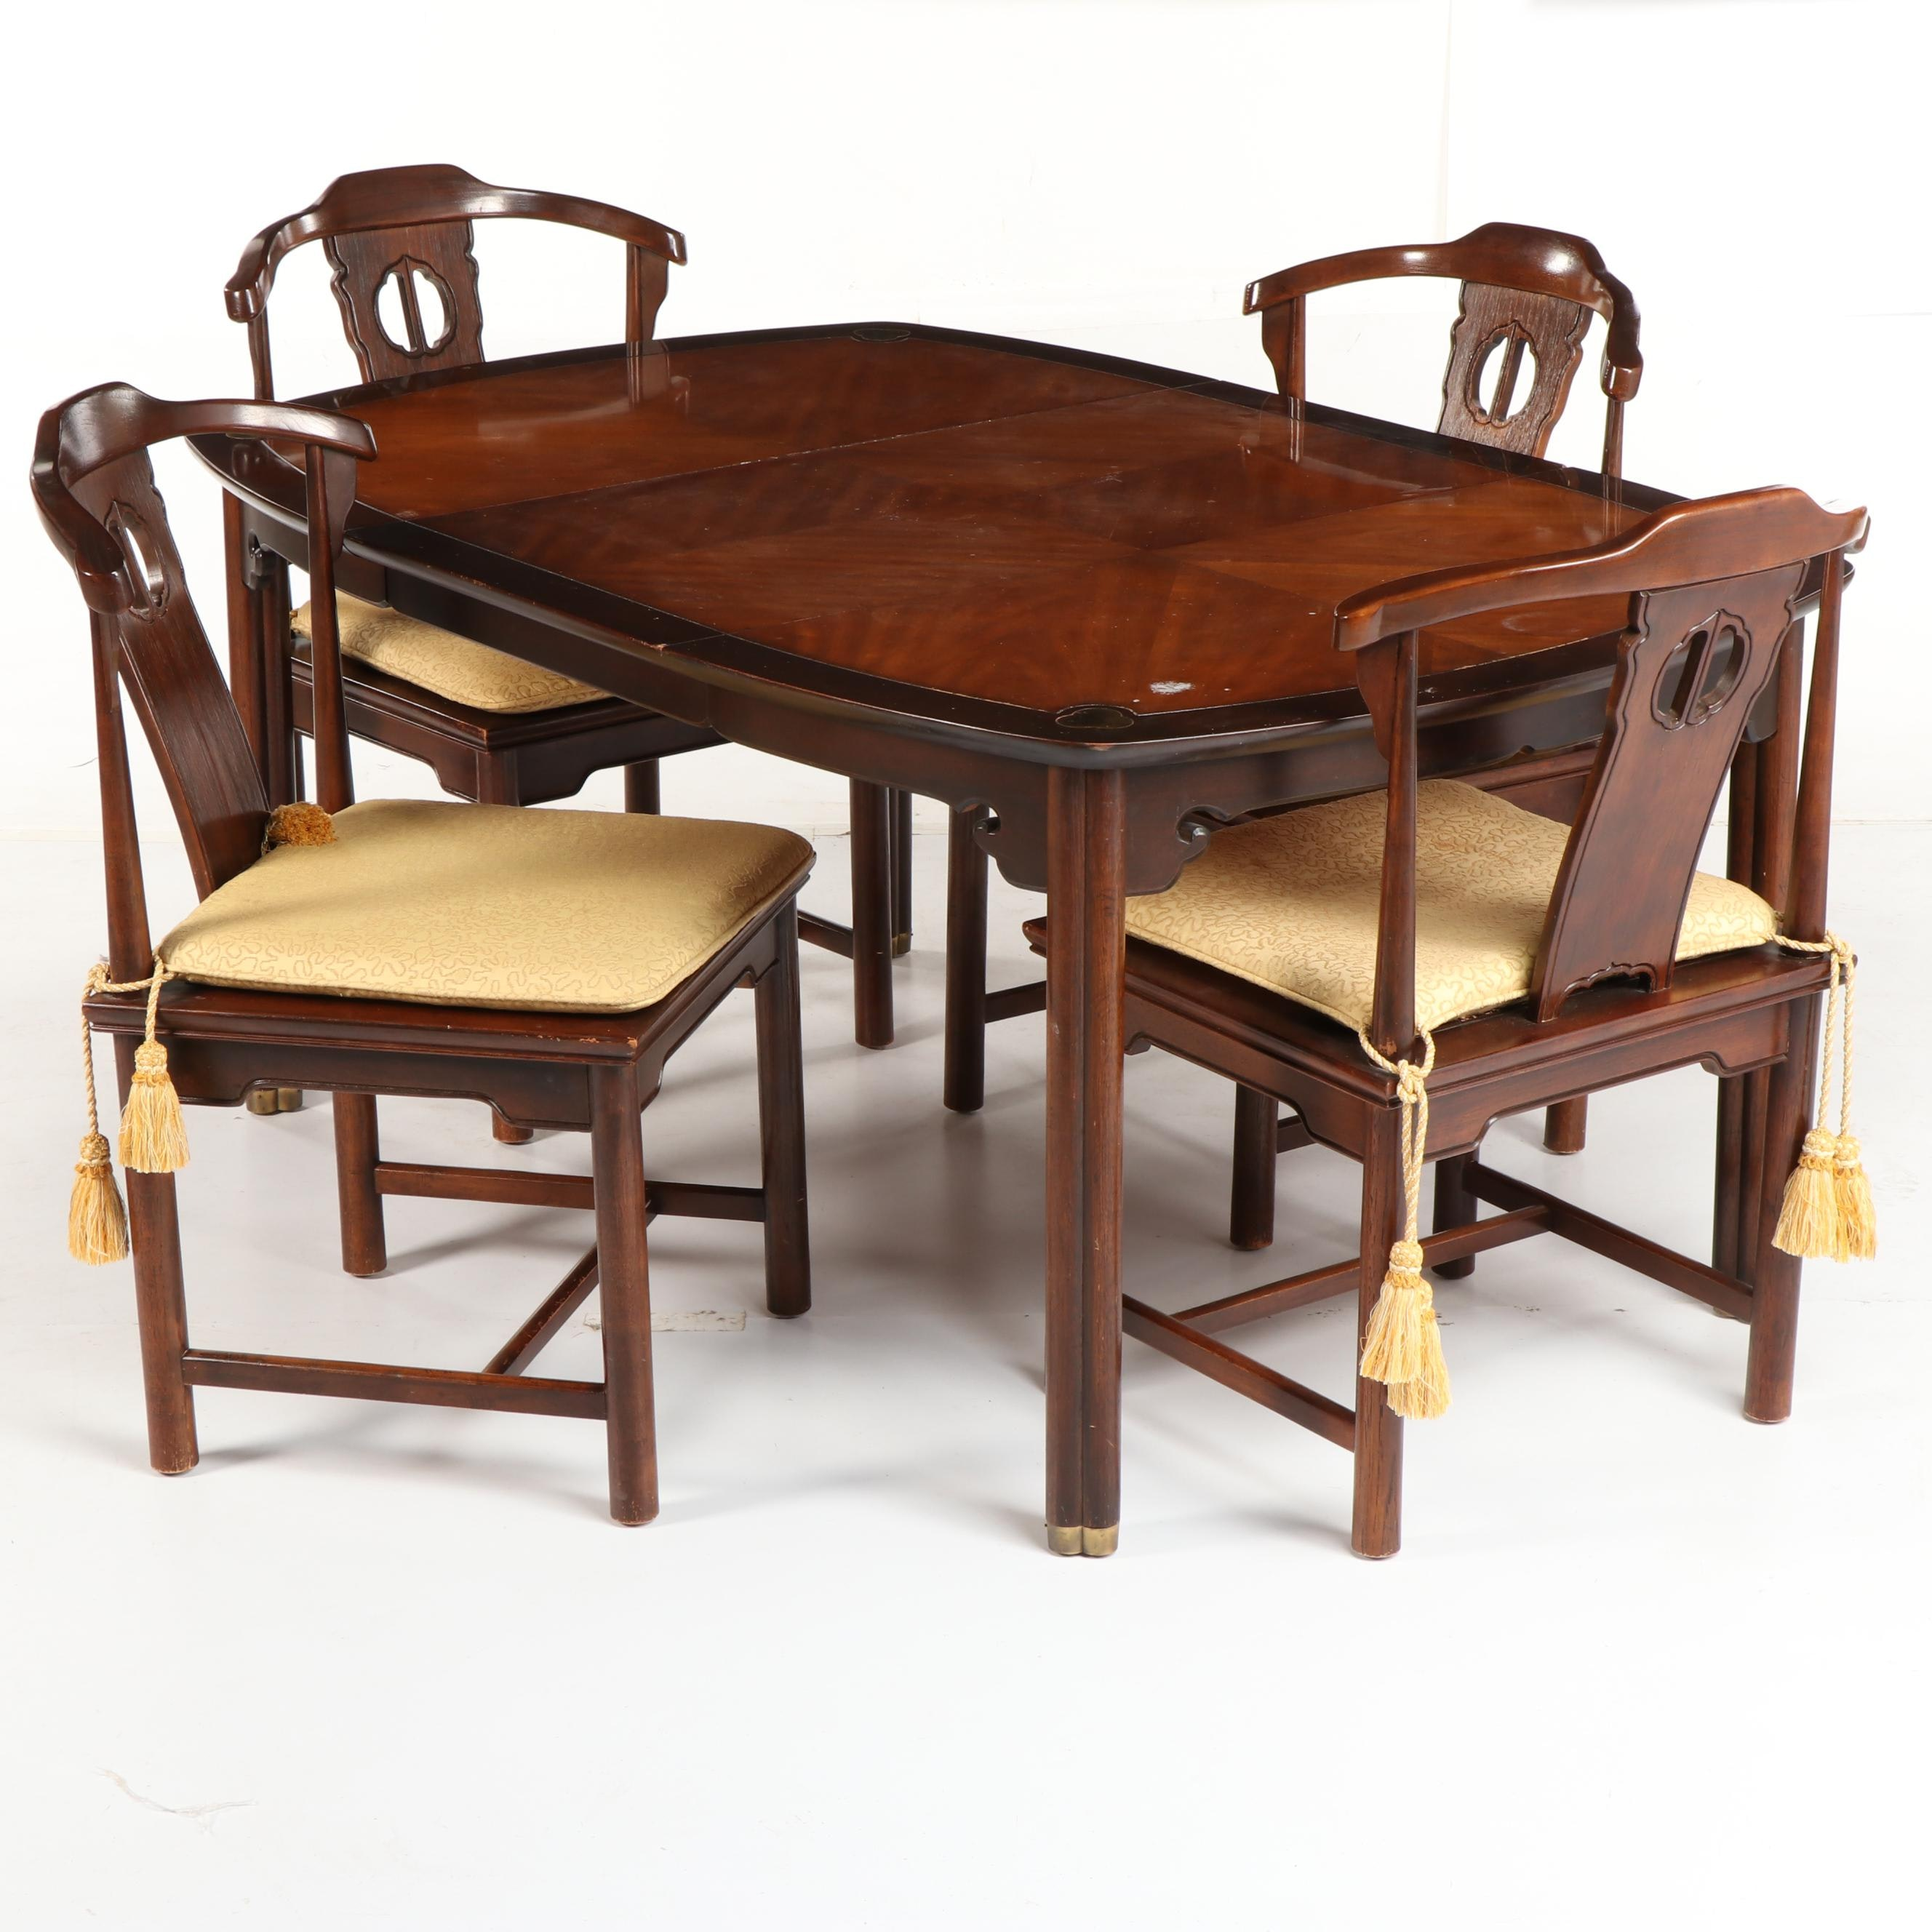 """Tai Ming"" Dining Table with Yoke Back Chairs by Drexel, Mid-20th Century"